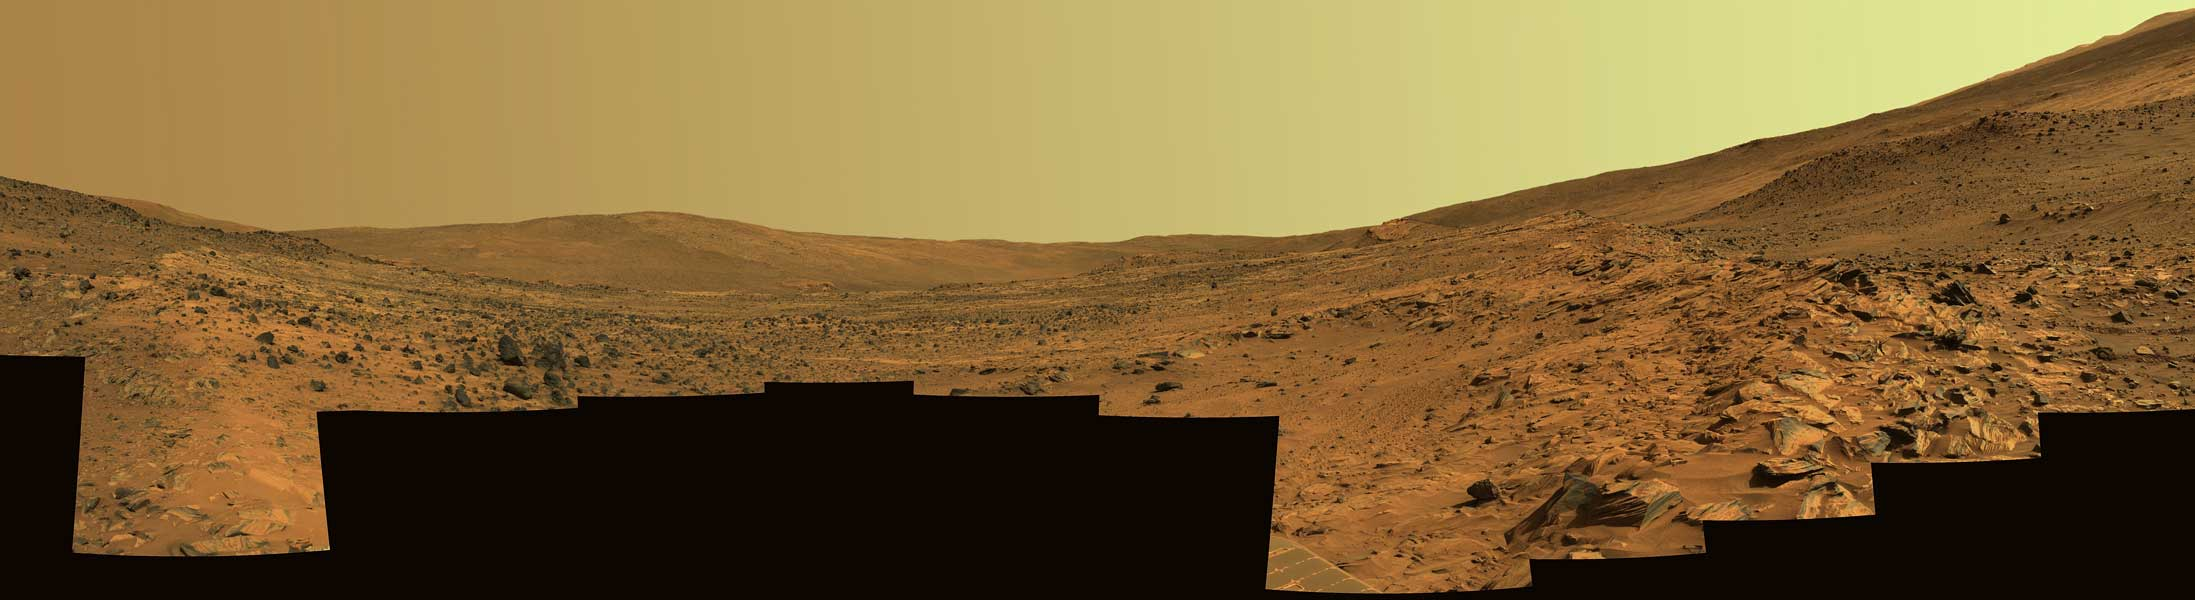 La Colline Mac Cool sur Mars